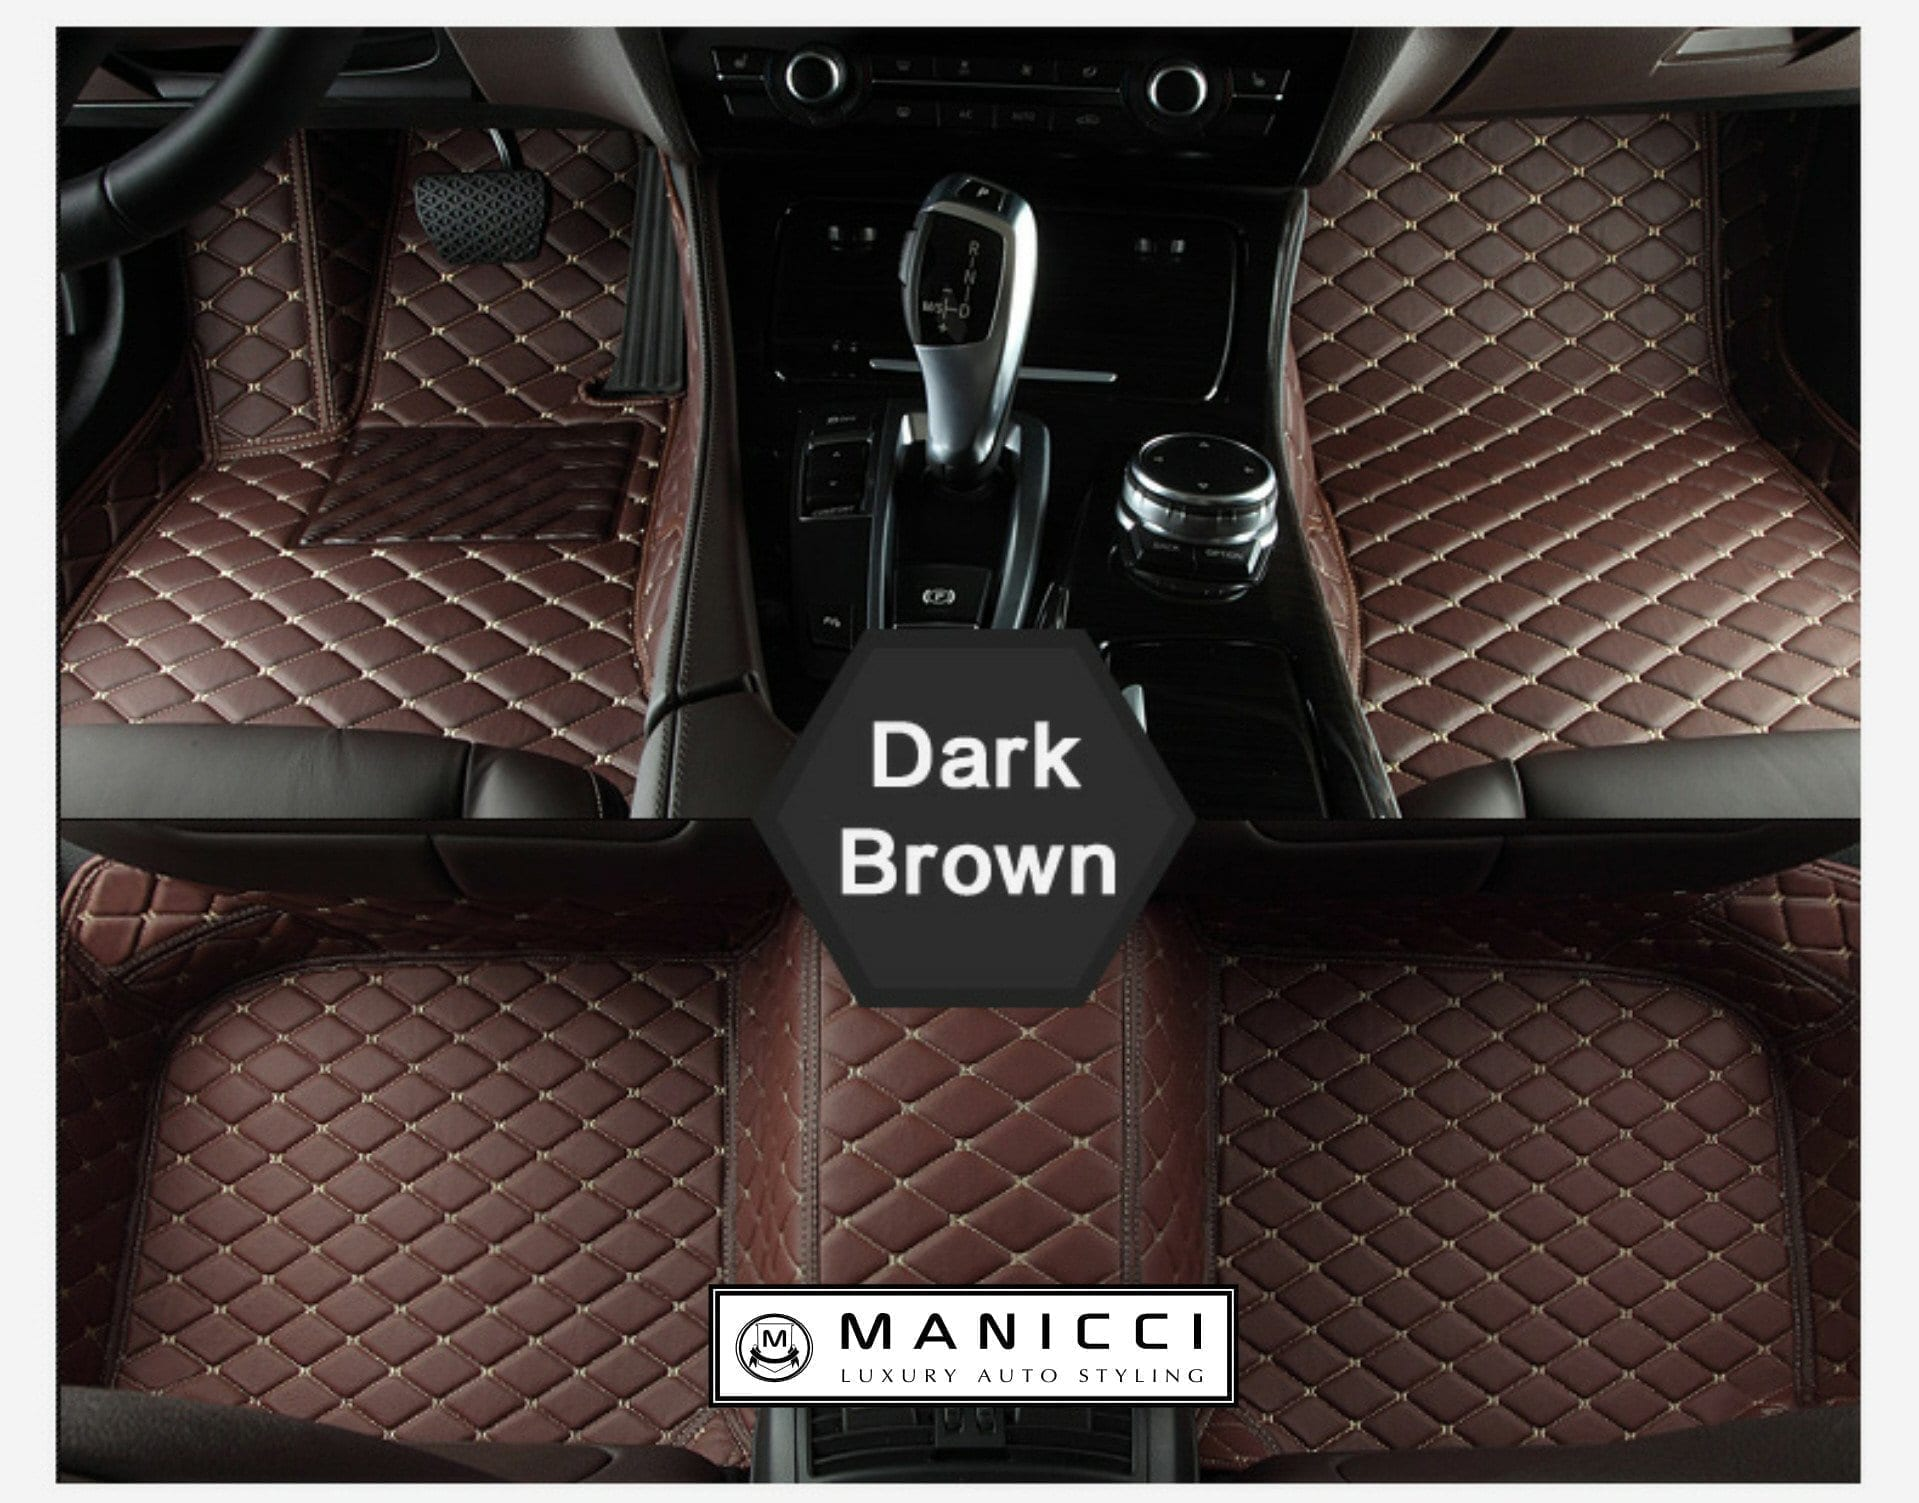 manicci luxury custom fitted car mats dark brown diamond free delivery usd manicci. Black Bedroom Furniture Sets. Home Design Ideas